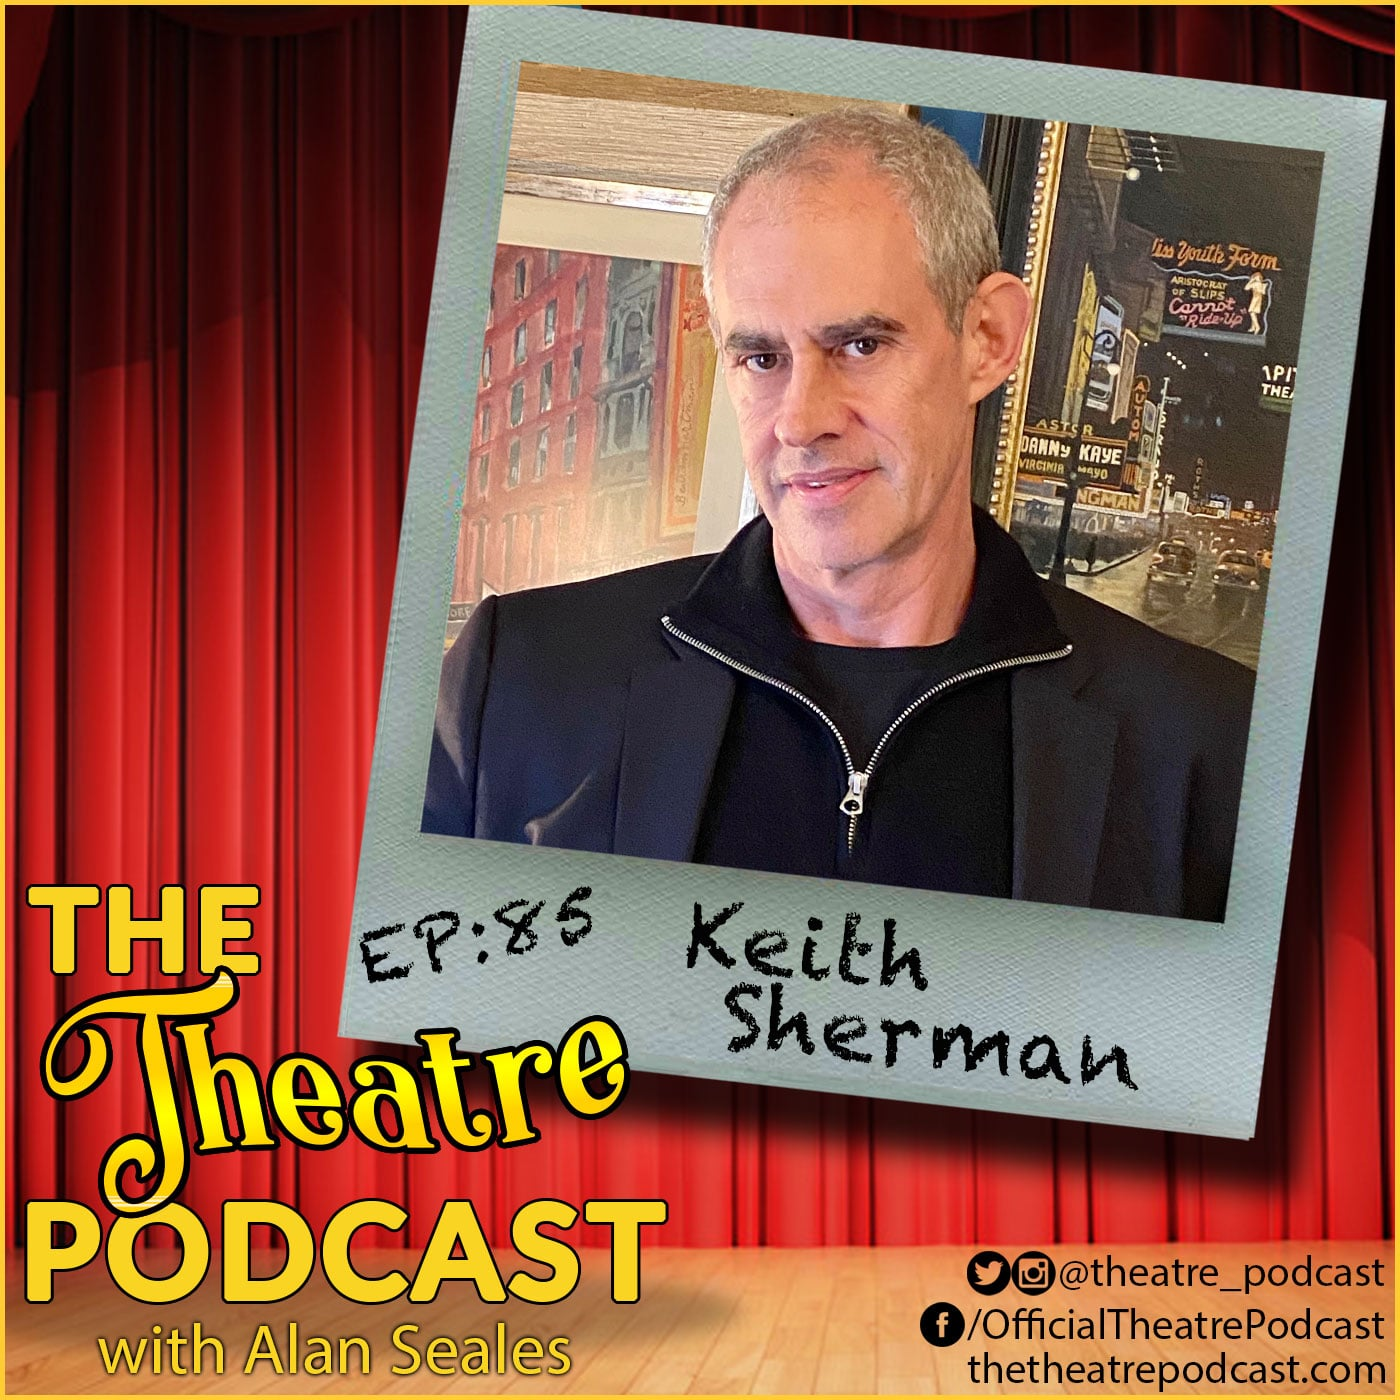 The Theatre Podcast with Alan Seales Ep85 - Keith Sherman, 18 years as a publicity agent repping over 300 shows, and now COVID-19 positive